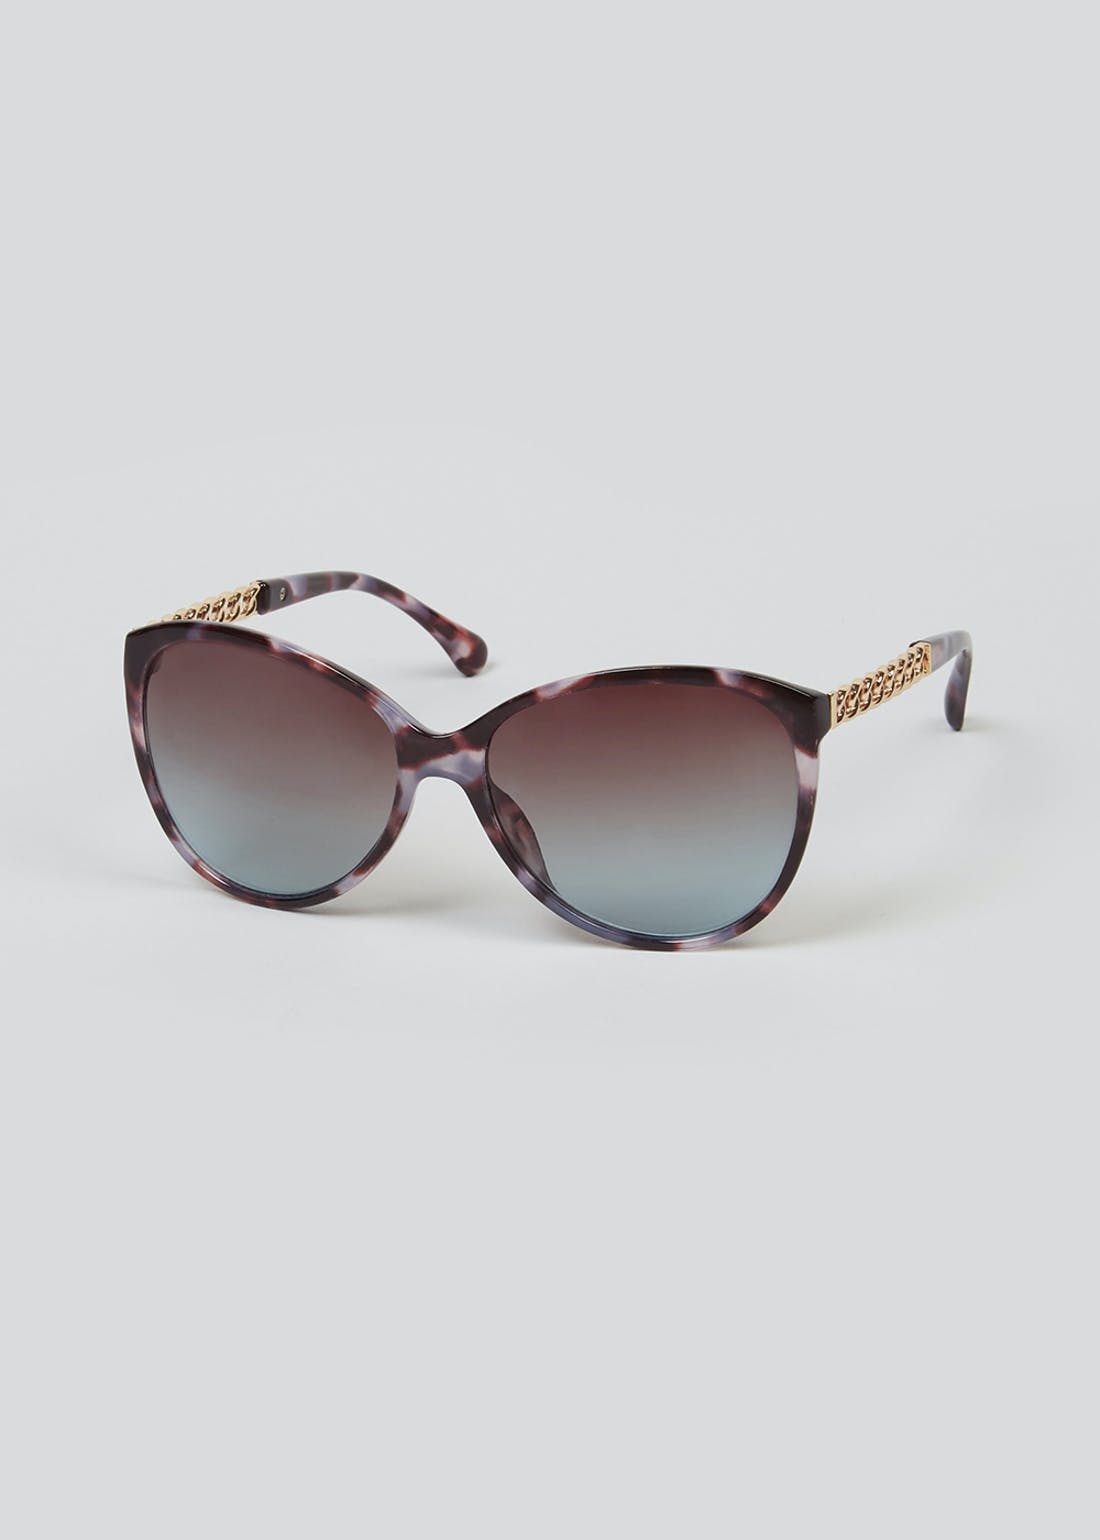 Chain Arm Cat Eye Sunglasses